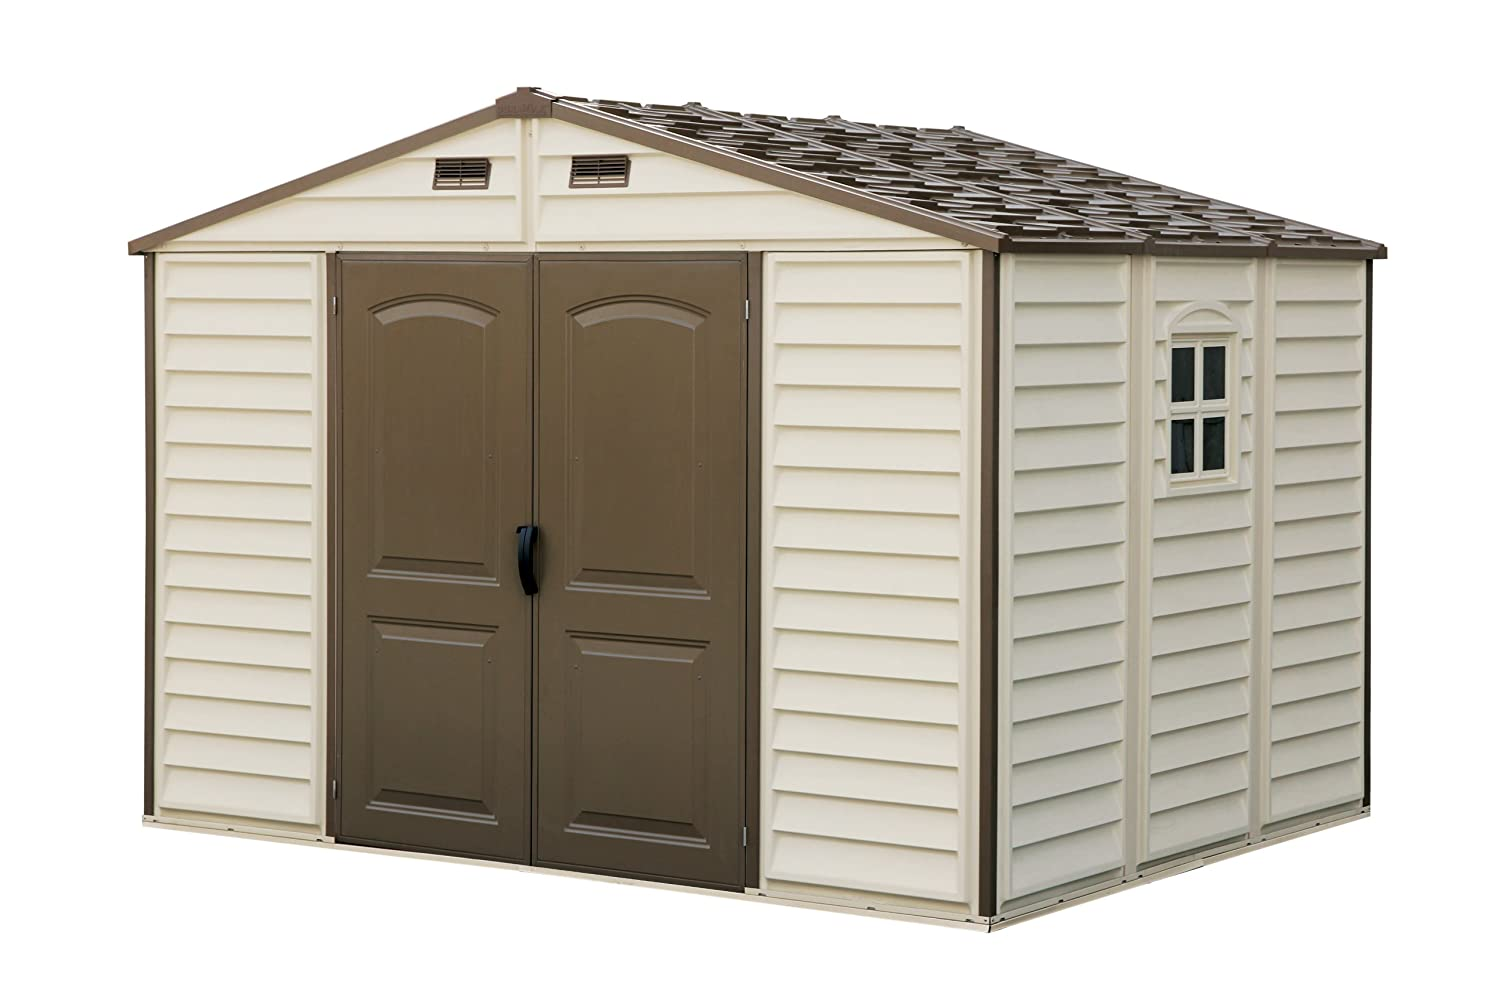 Woodside 10 x 8 vinyl storage shed with foundation and three fixed window amazon co uk garden outdoors